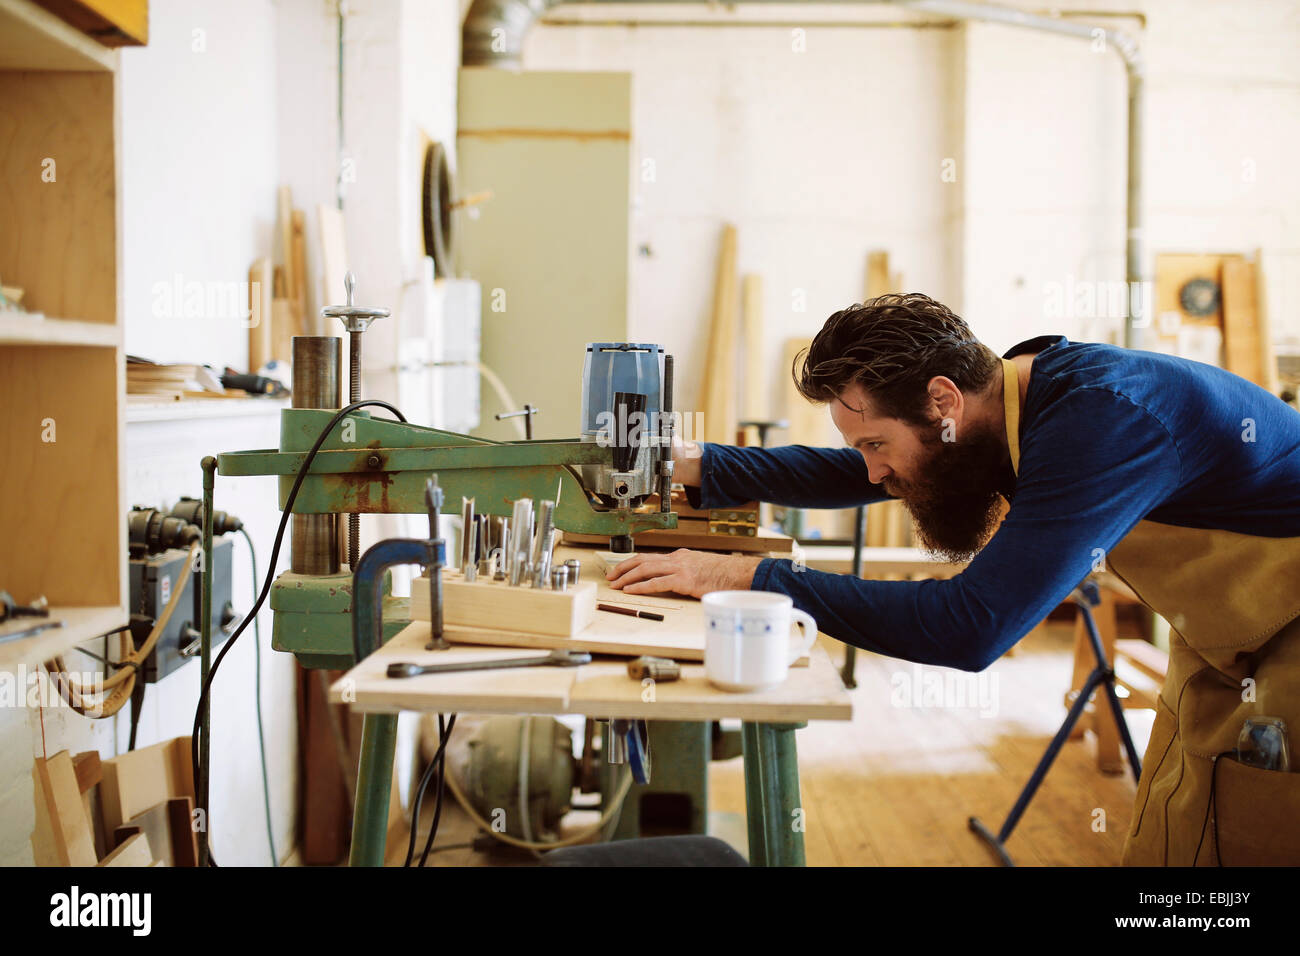 Mid adult craftsman using machine in pipe organ workshop - Stock Image